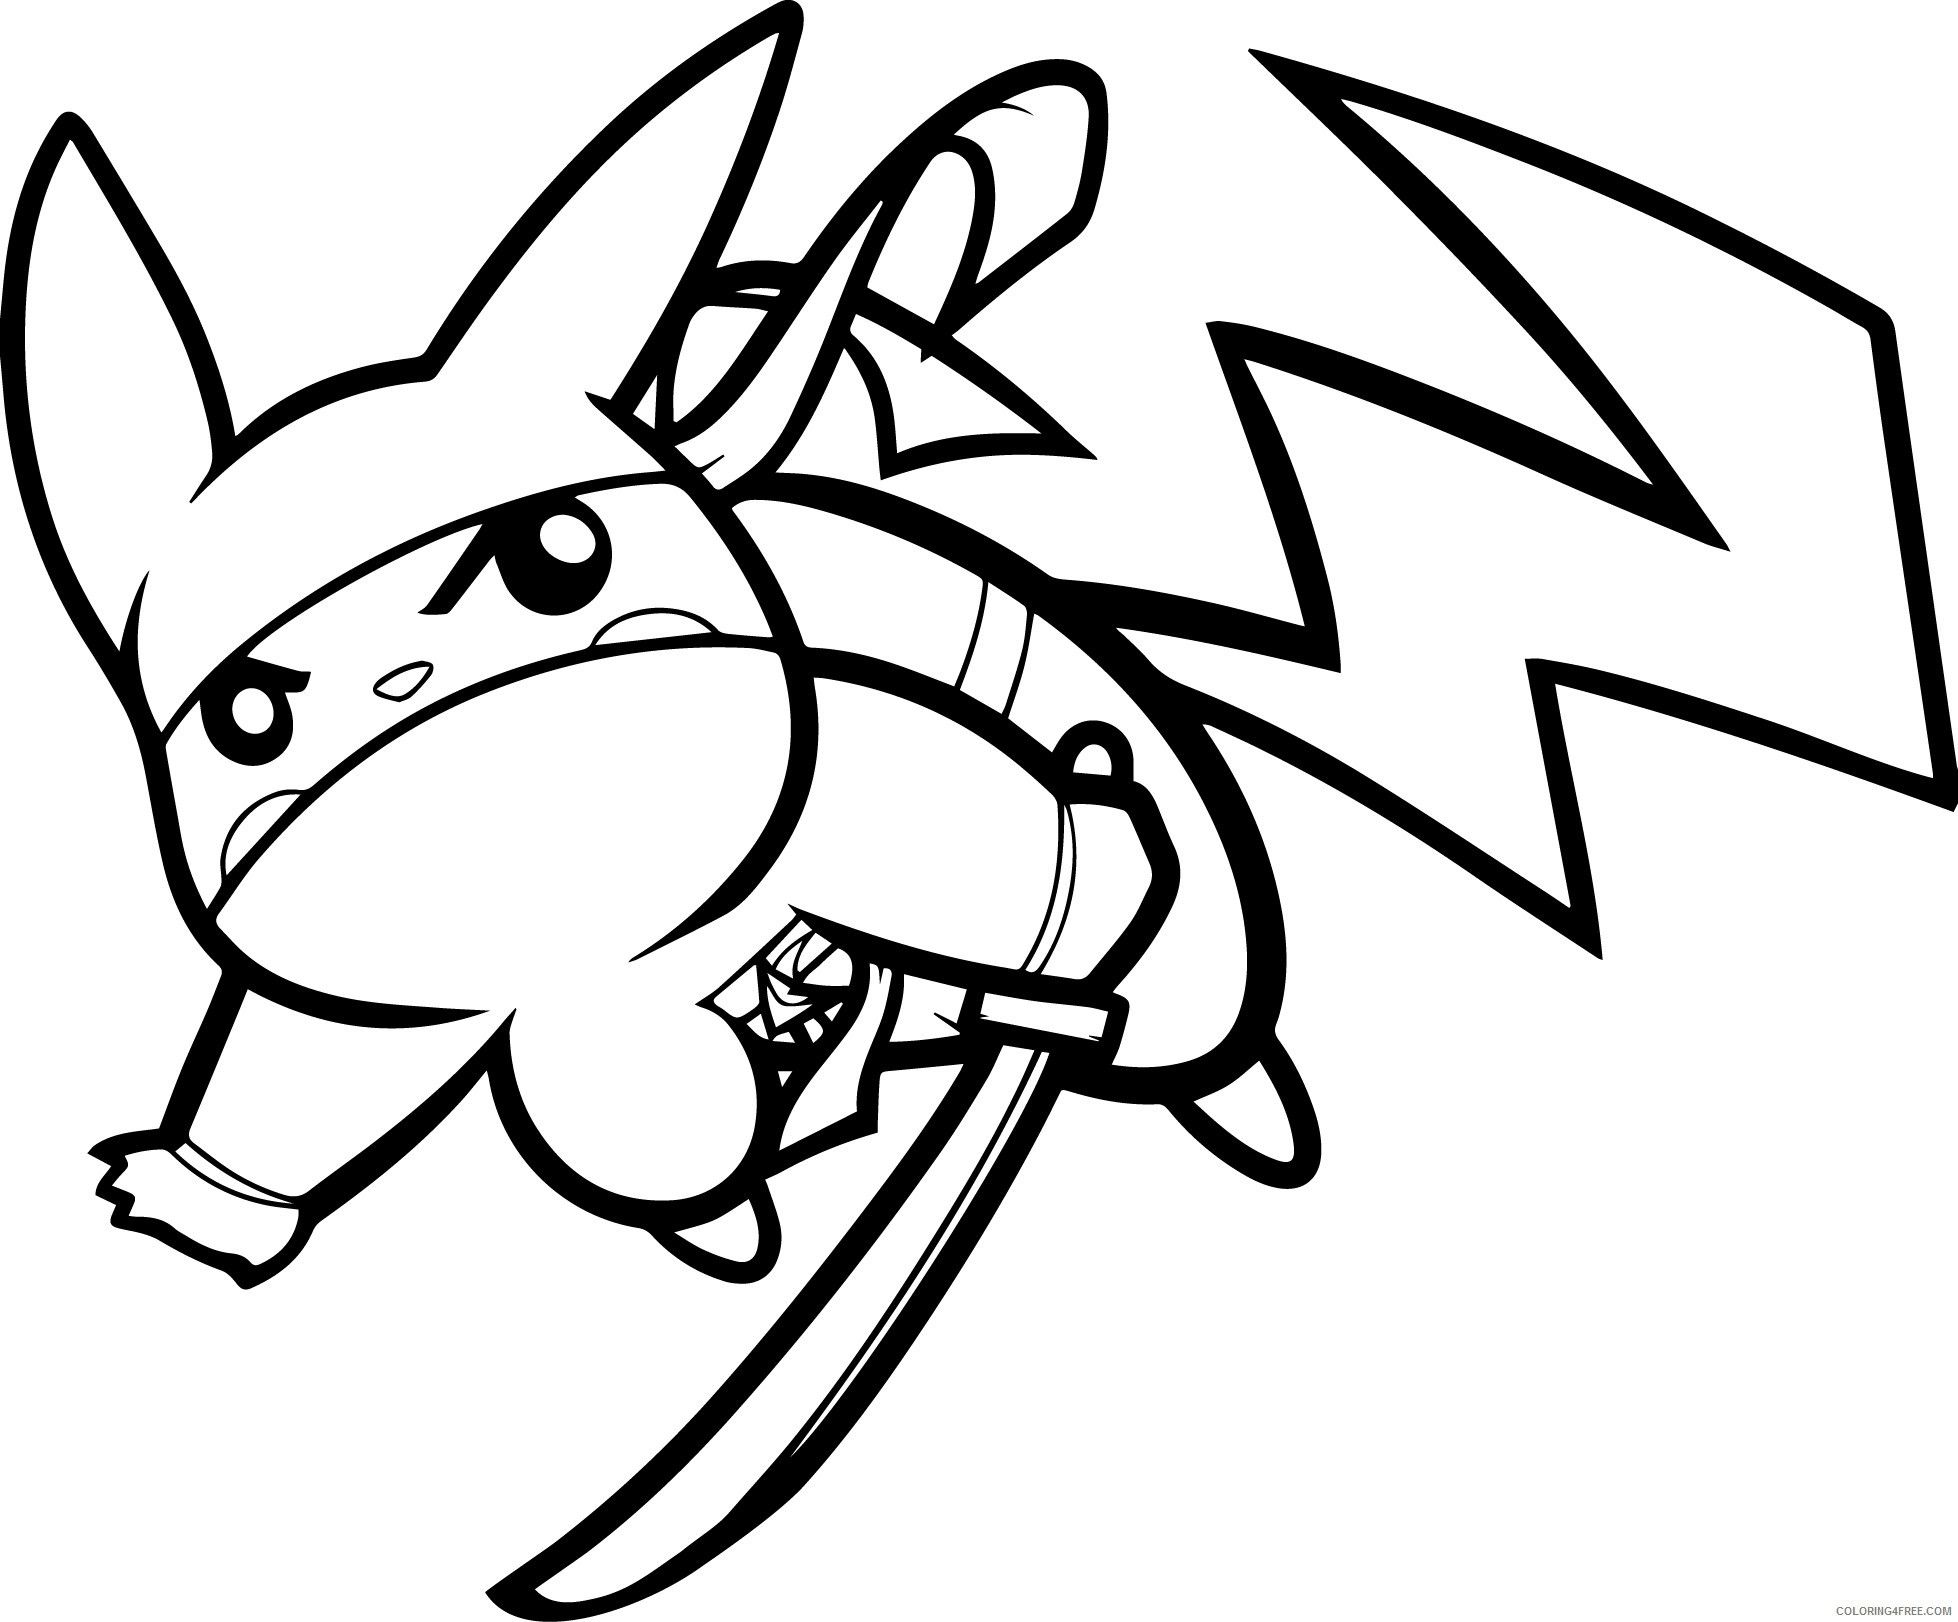 Pikachu Ninja Coloring Page From The Thousands Of Photos On The Net Concerning Pikachu Ninja Co Pikachu Coloring Page Pokemon Coloring Pages Pokemon Coloring